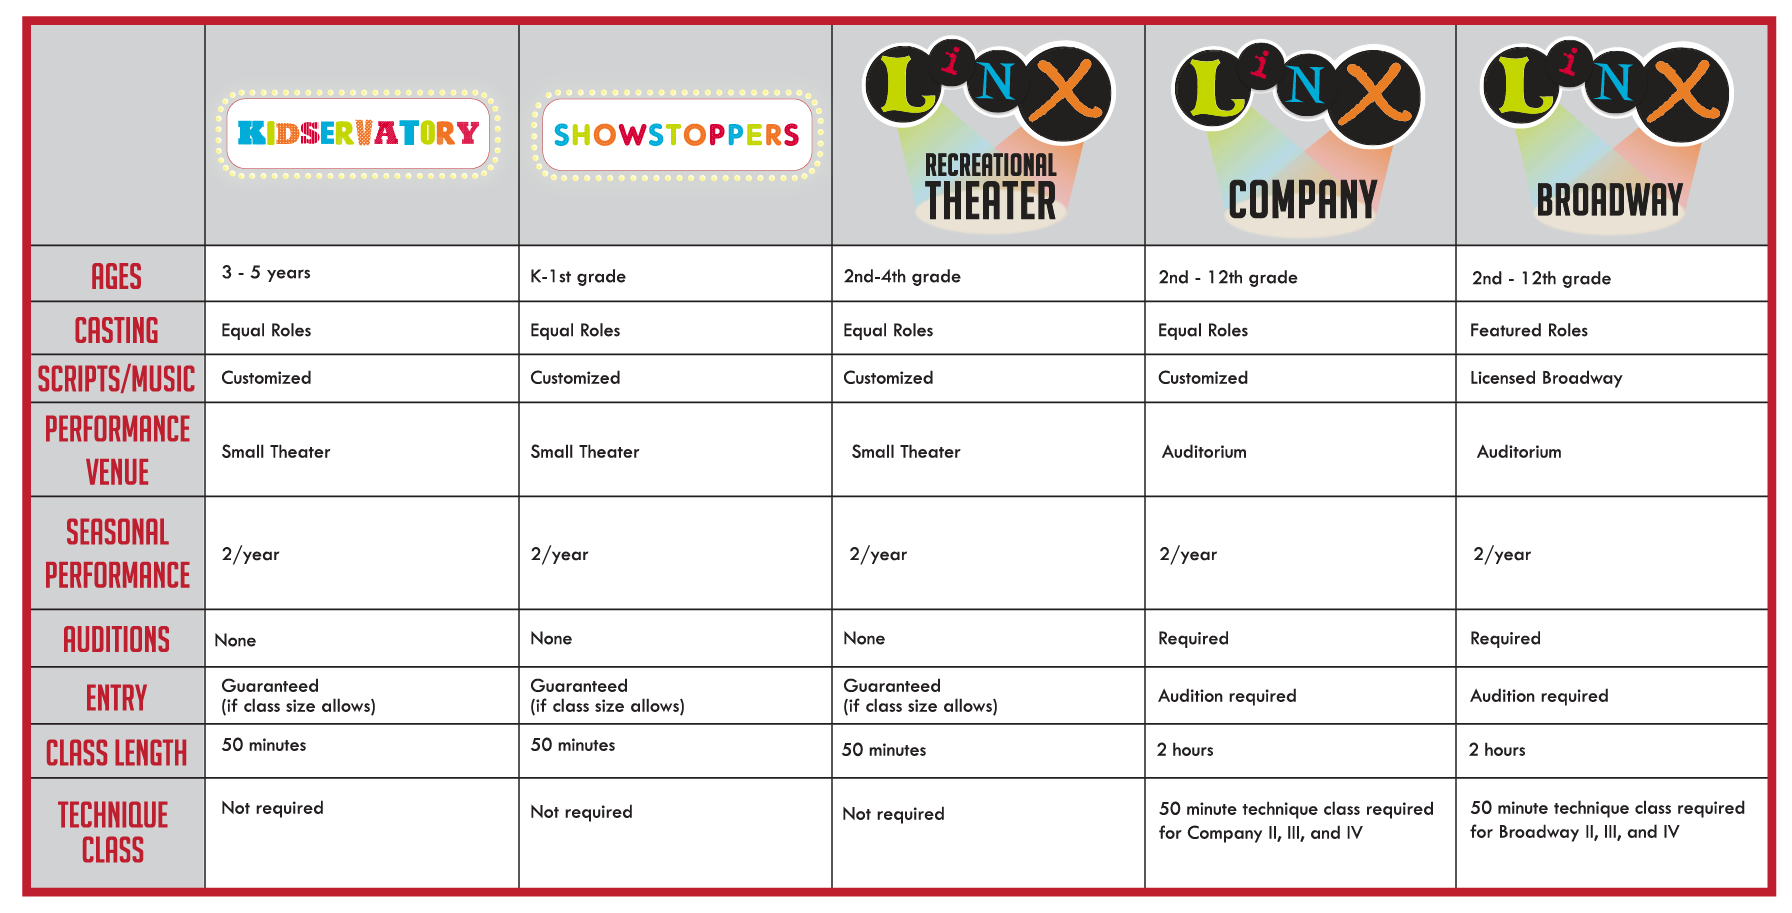 LINX Theater programs comparison chart